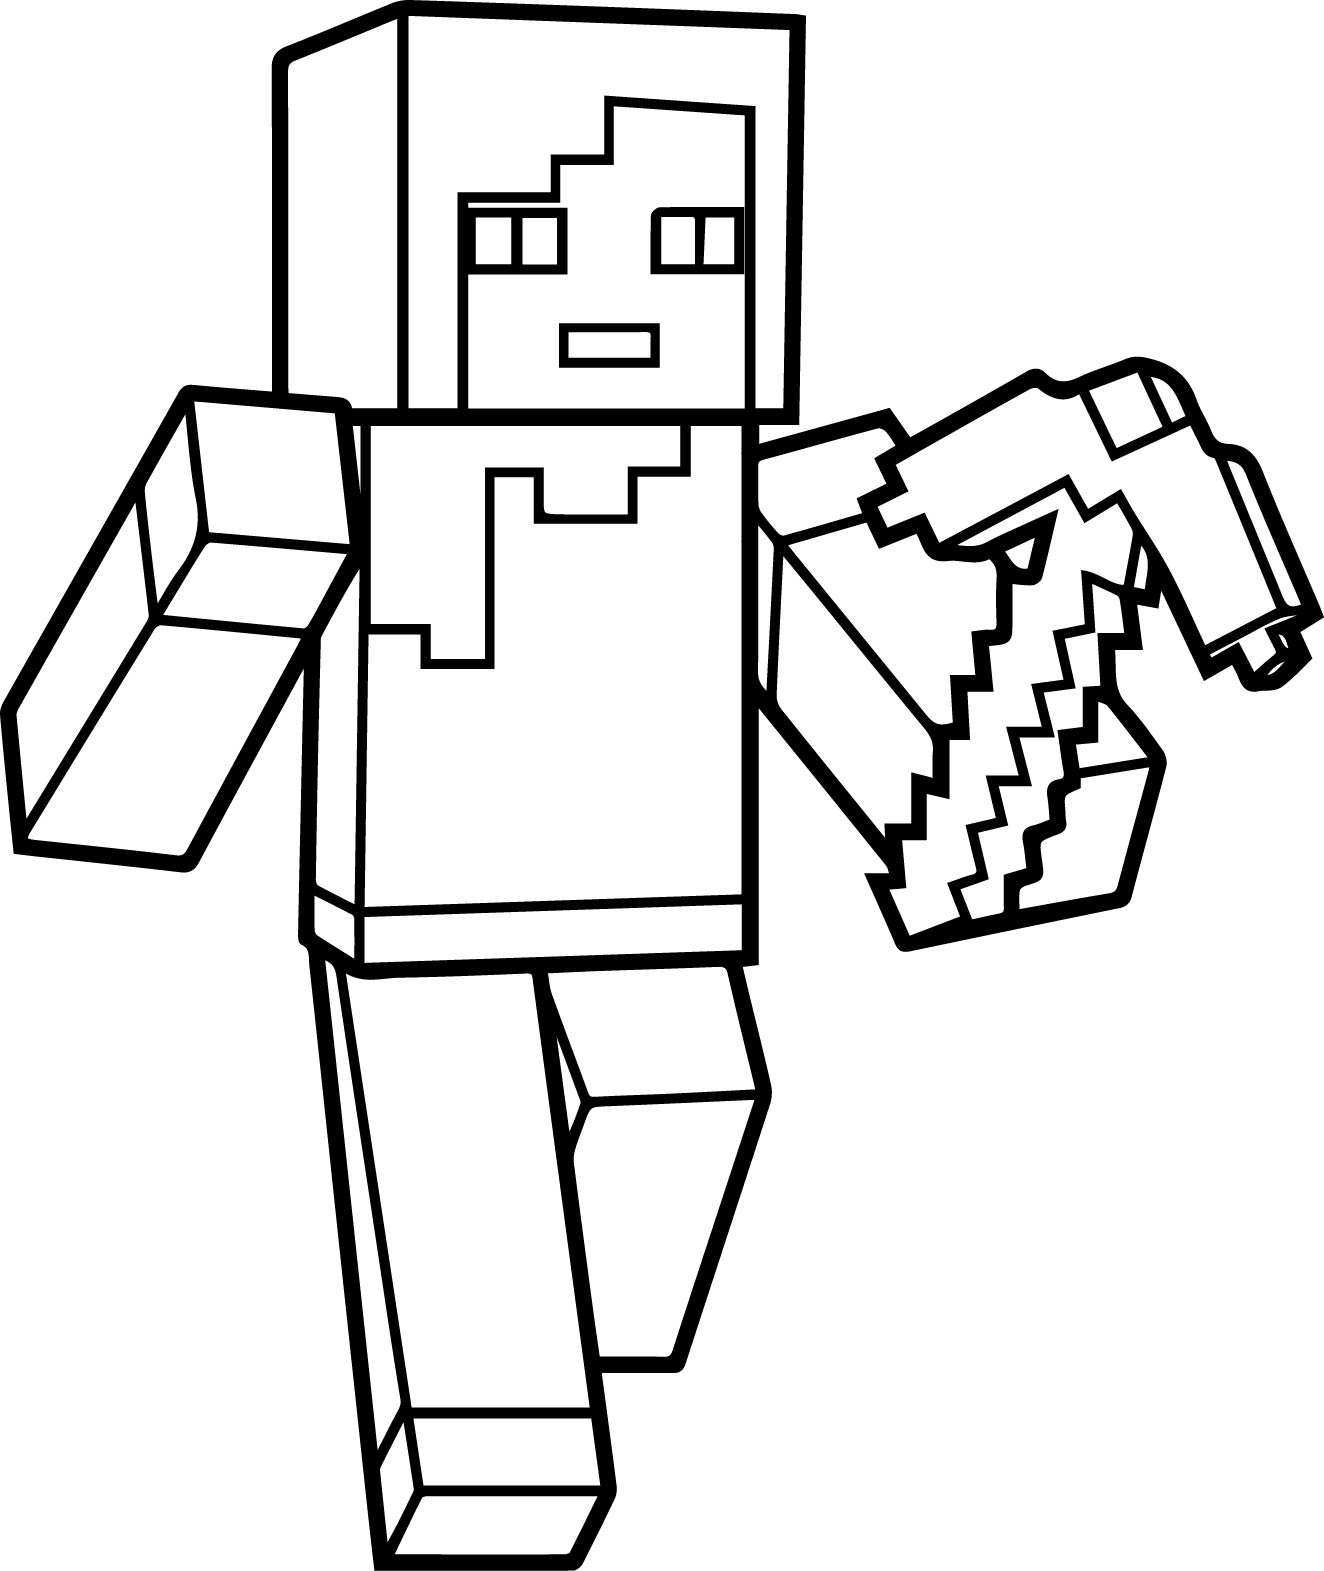 1324x1571 Free Minecraft Coloring Pages Fresh Minecraft Cat Free Colouring